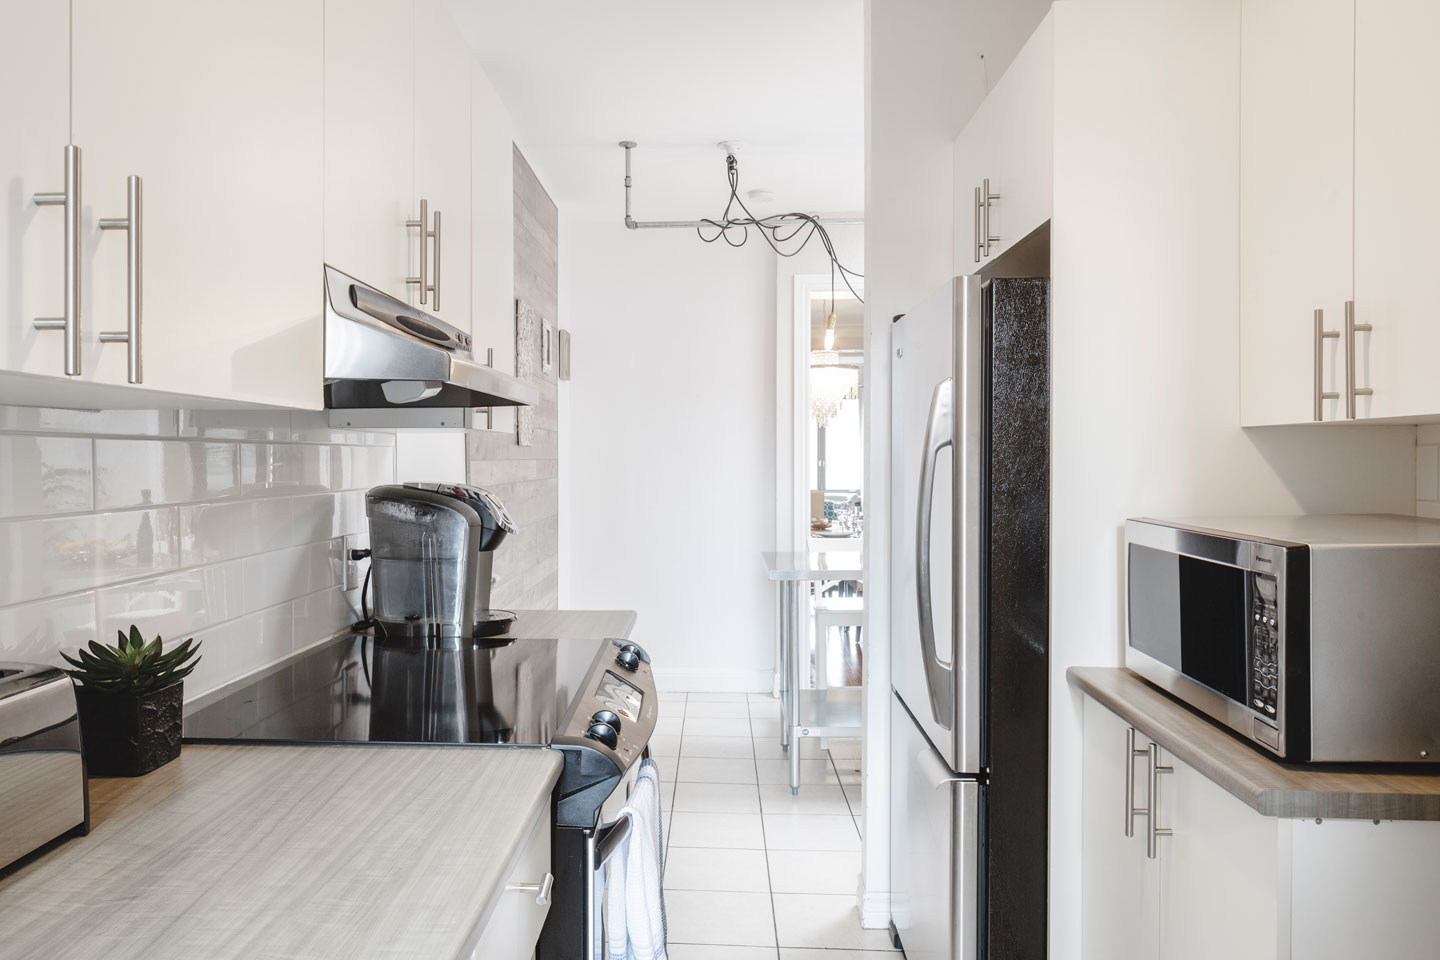 Golden kiss: fully equipped kitchen with dishwasher